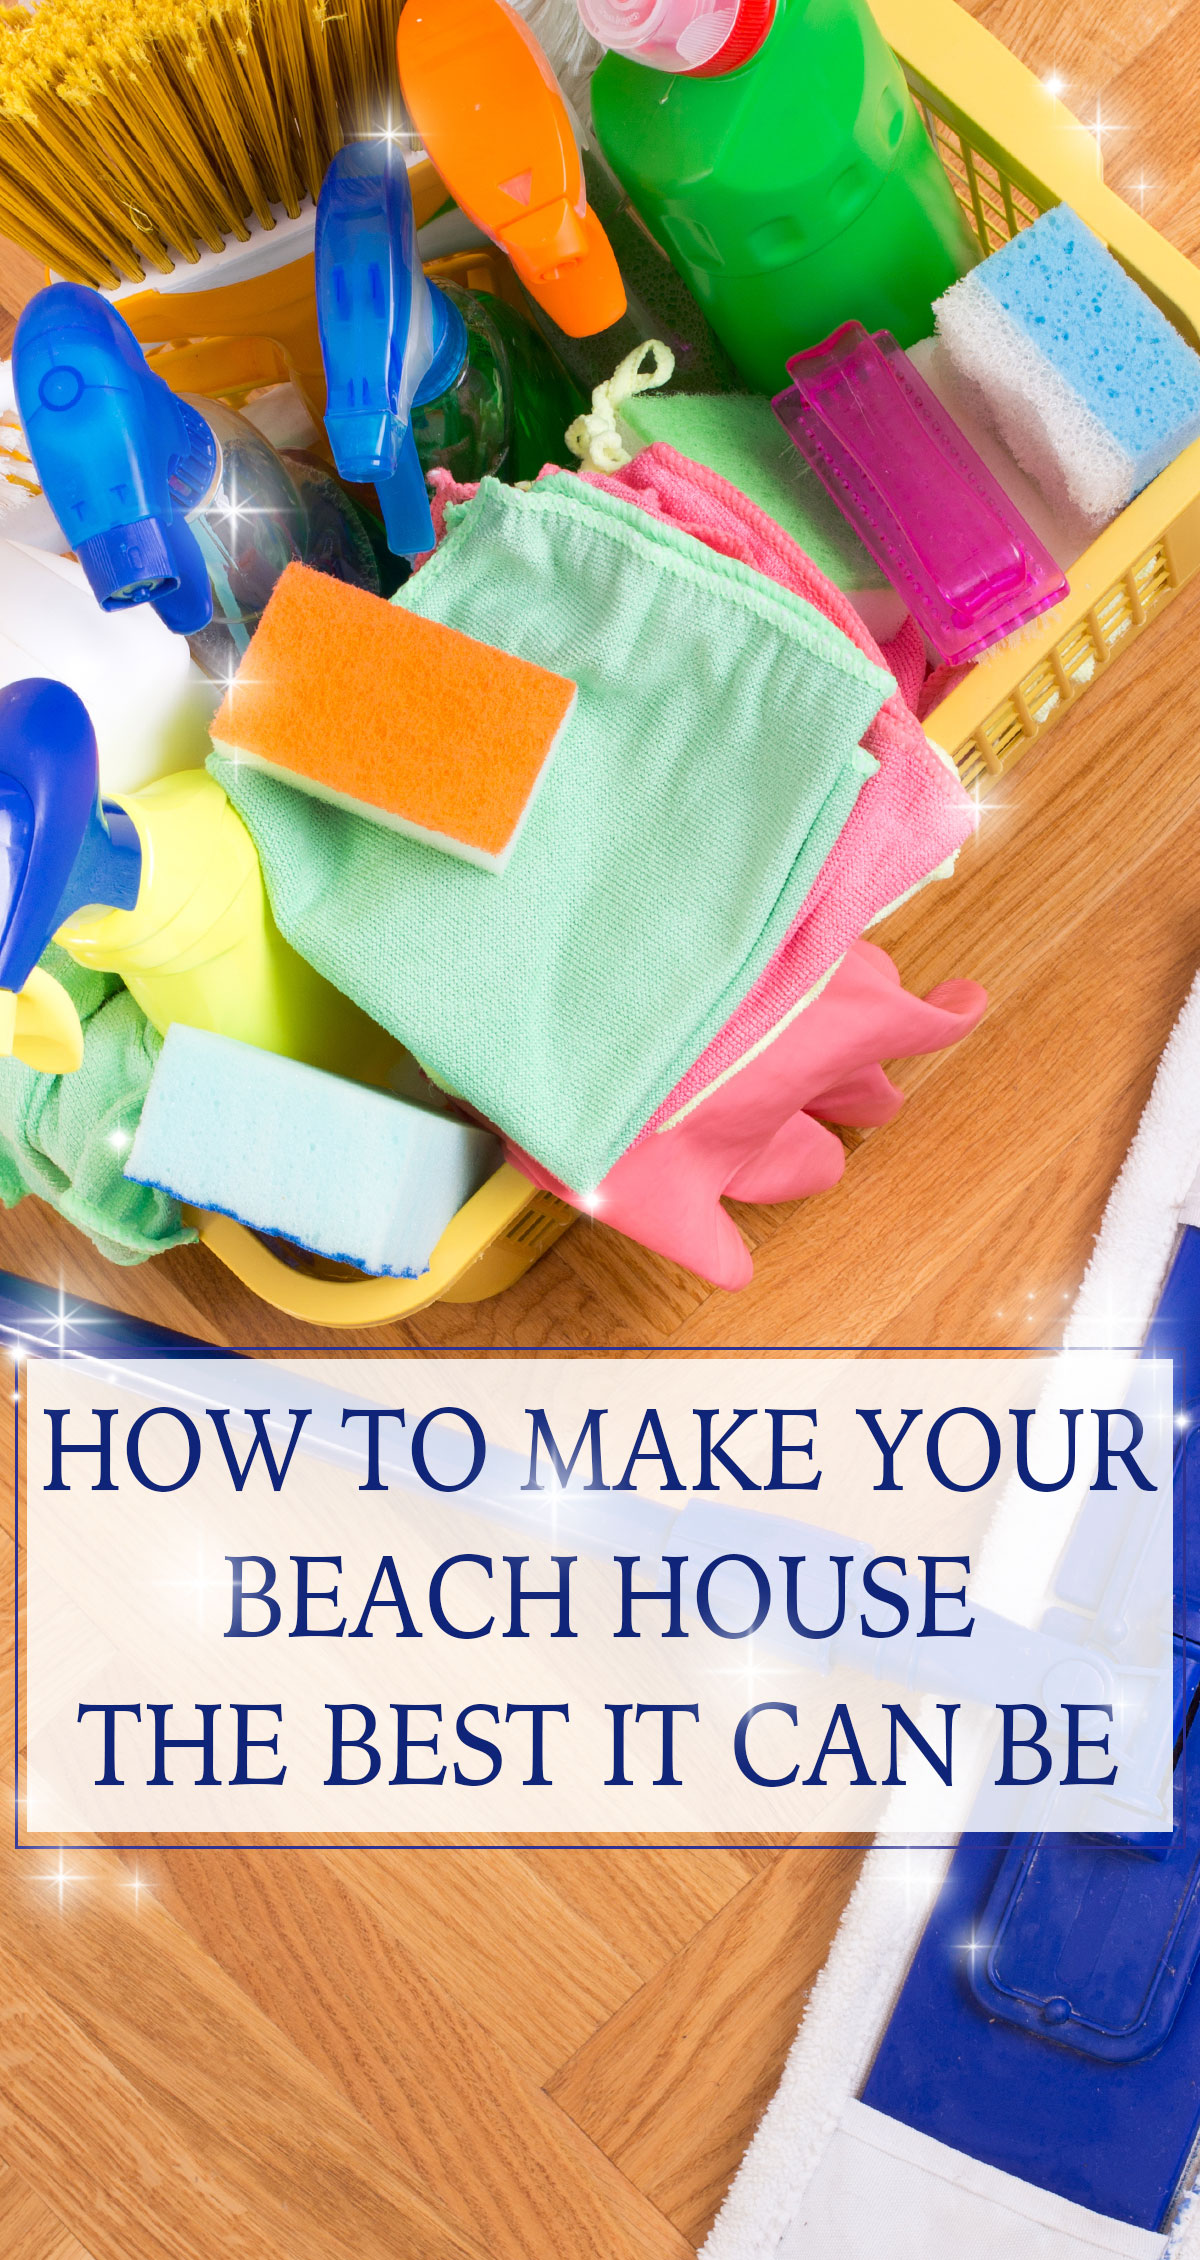 How to Make Your Beach House the Best It Can Be